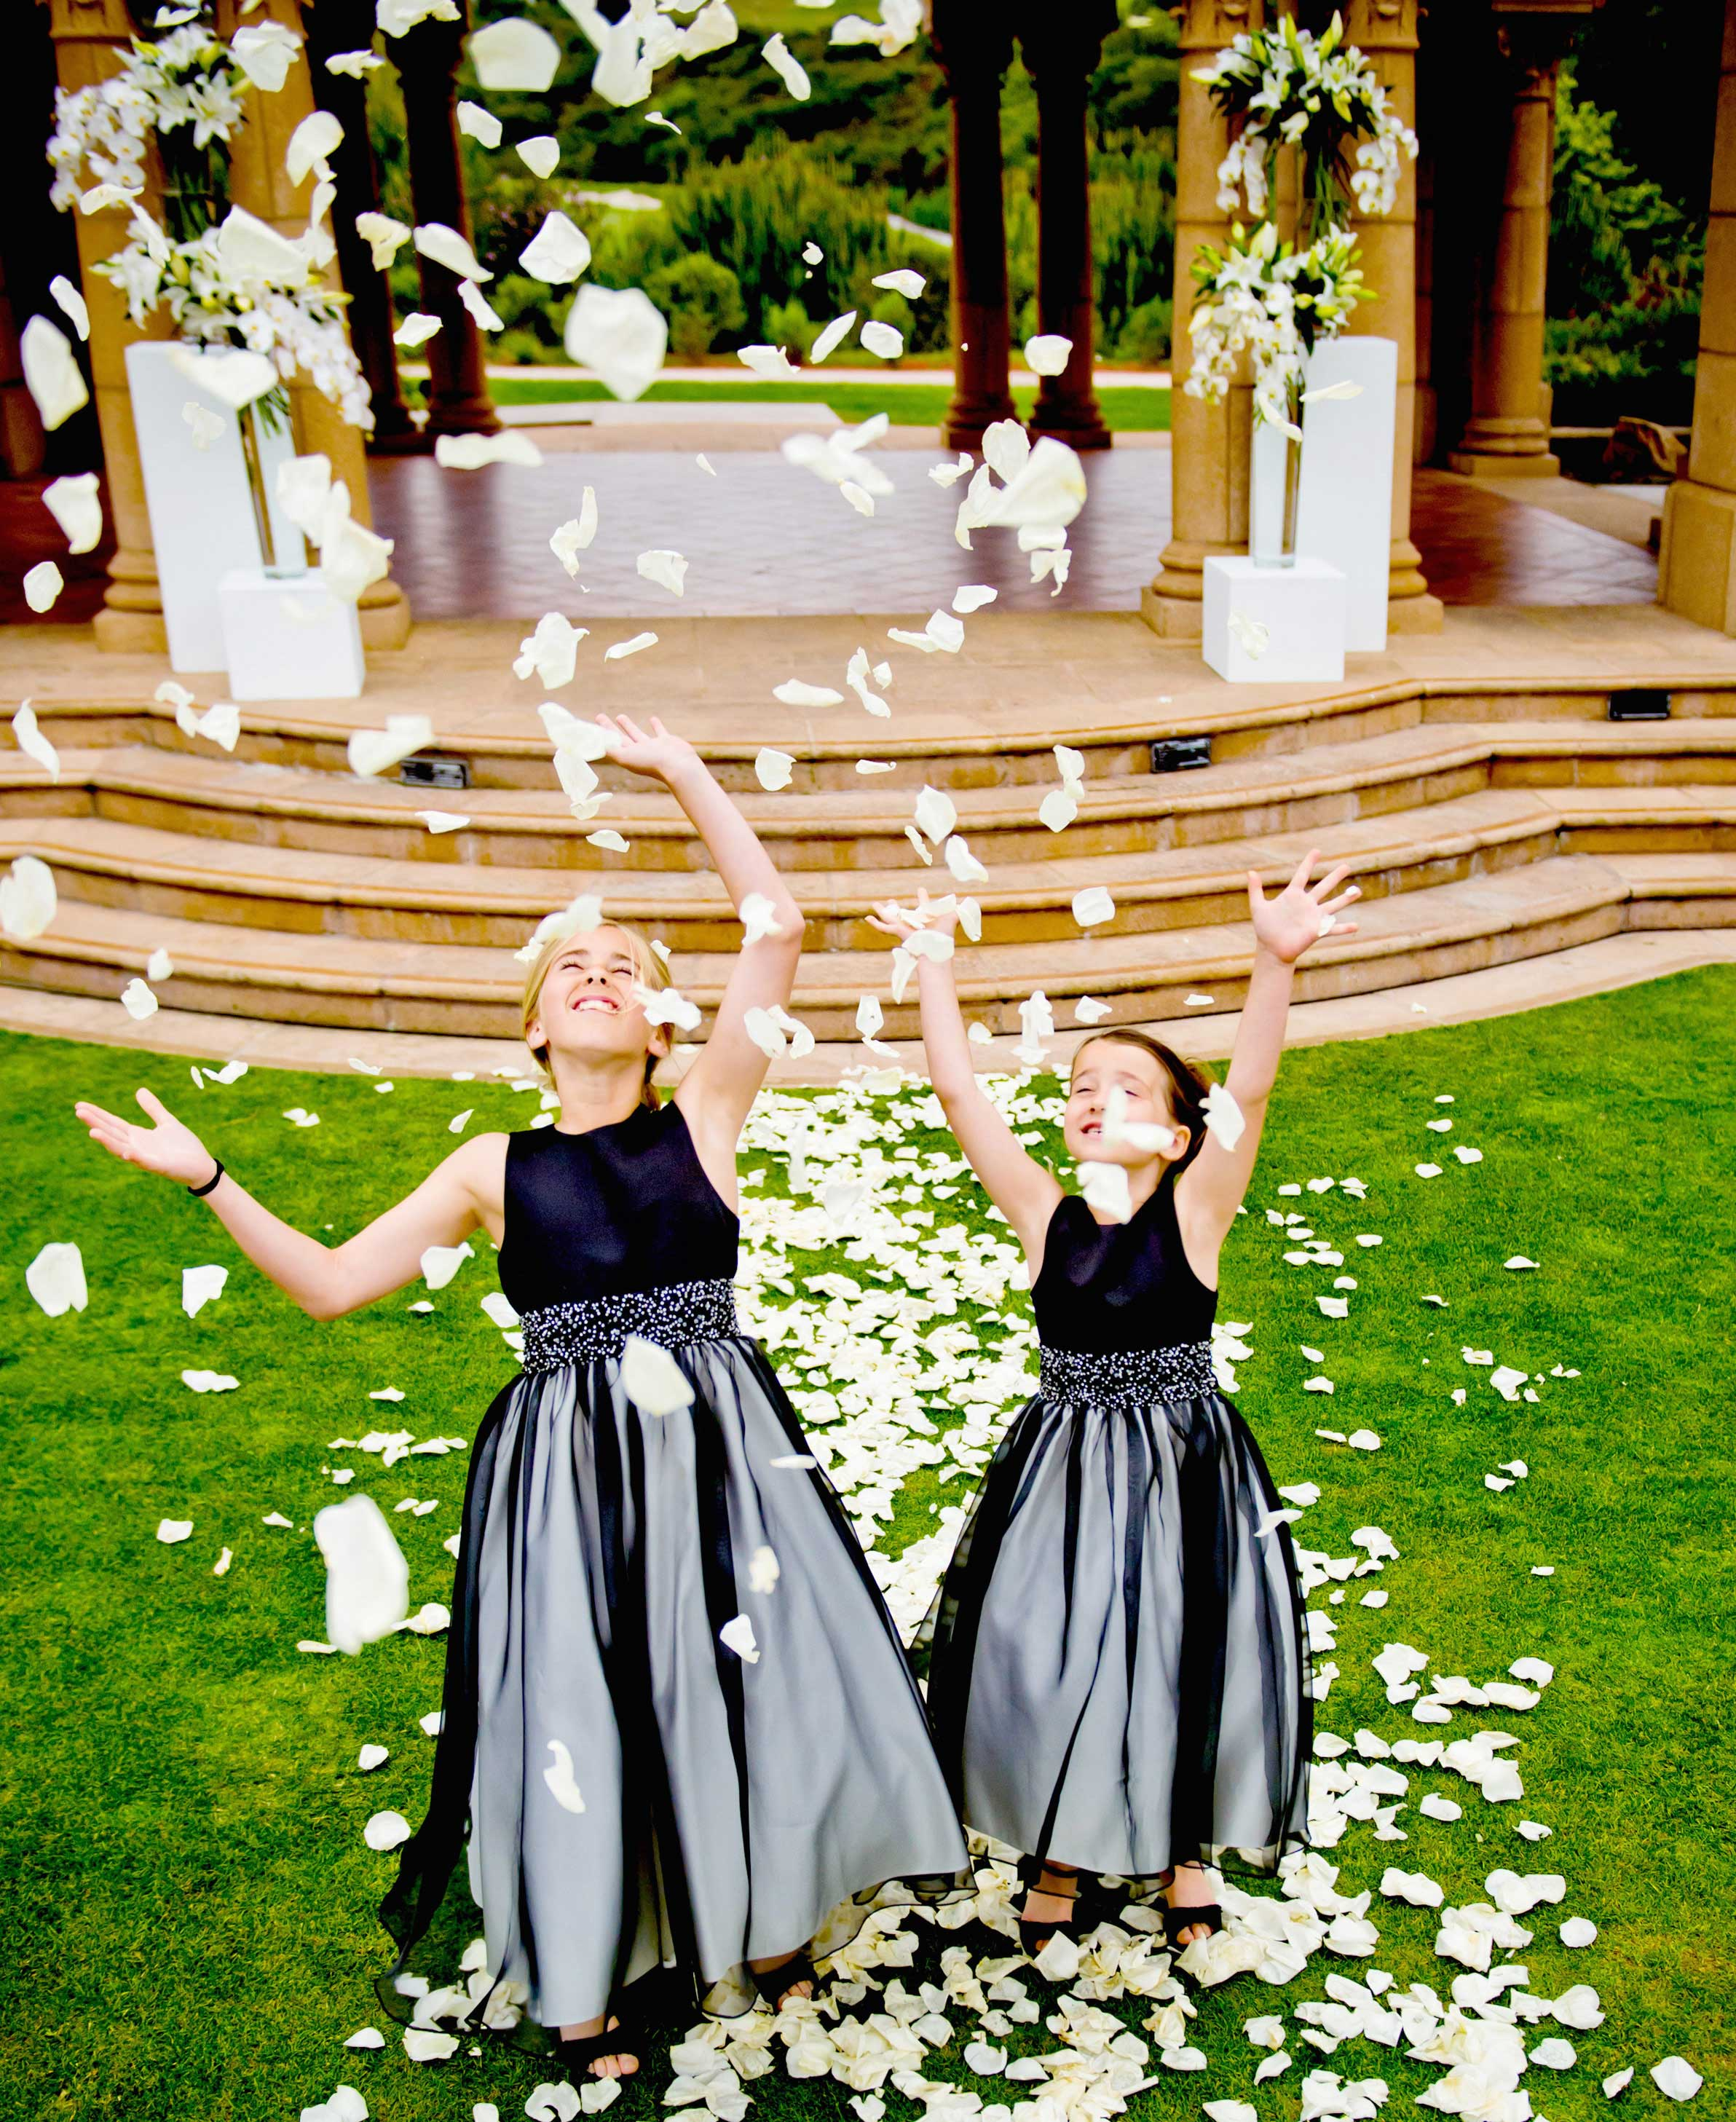 Flower girls tossing rose petals in black dresses